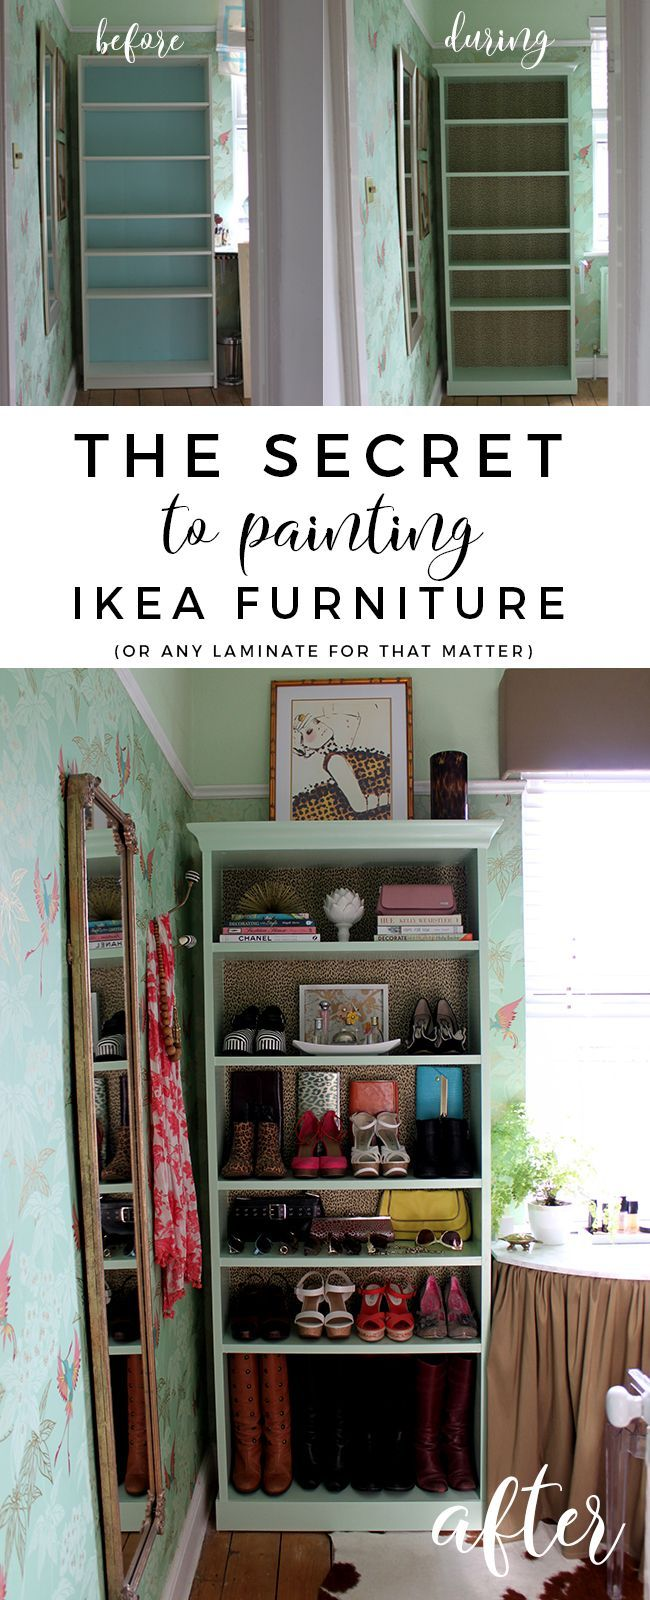 This'll be helpful. I have my big black IKEA bookcase and a smaller floating grey nightstand that'd need to be painted.